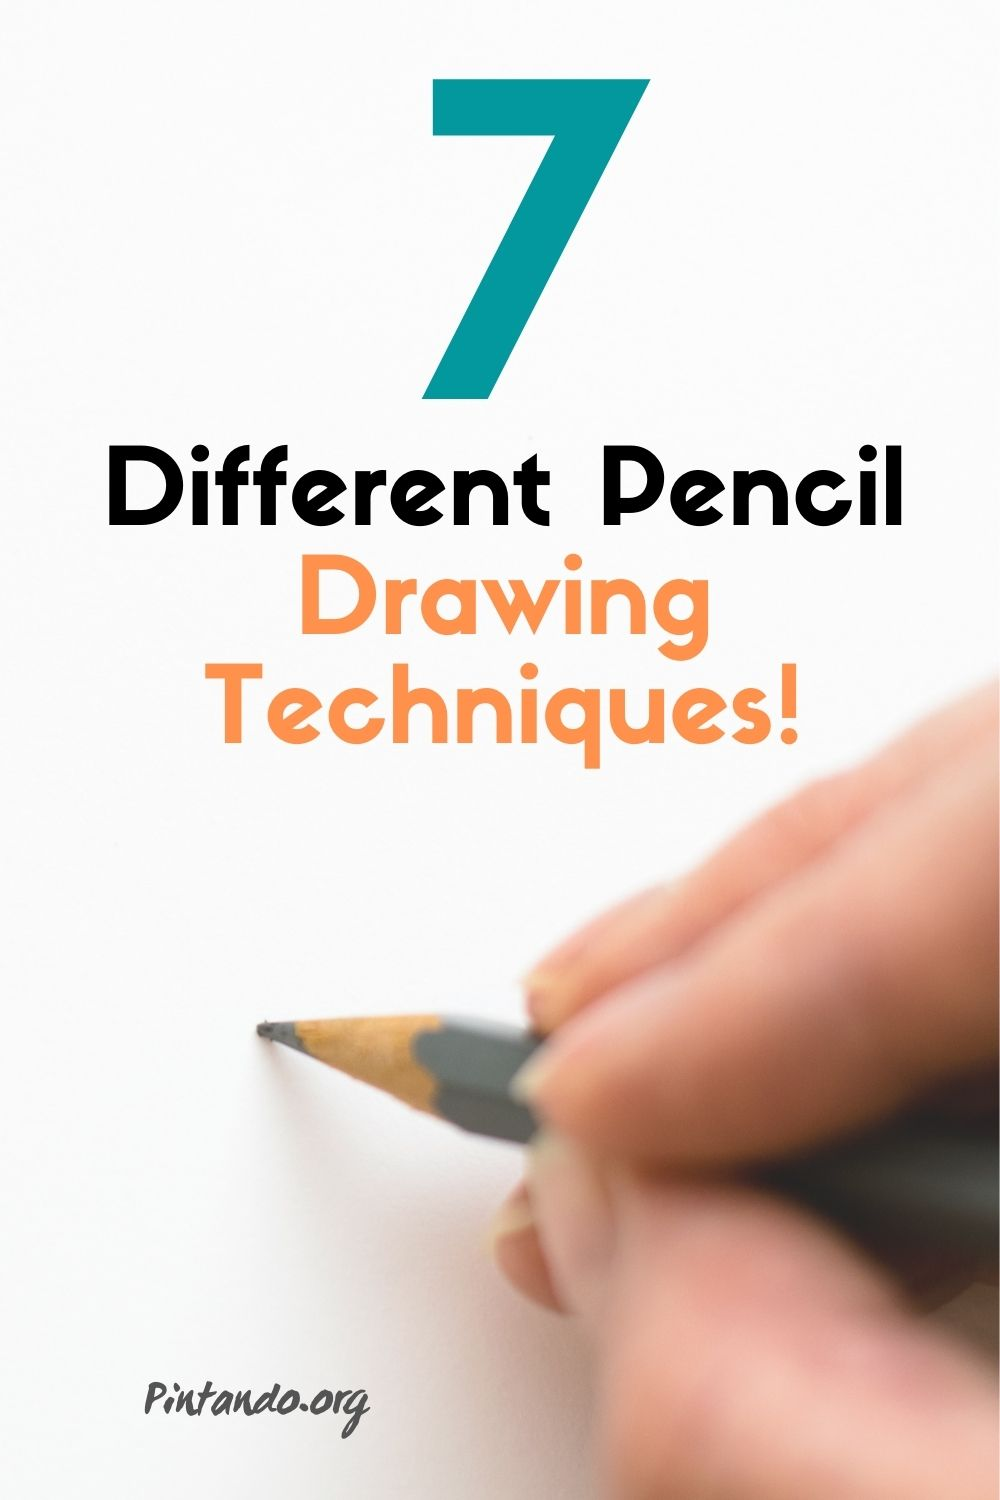 Different Pencil Drawing Techniques!